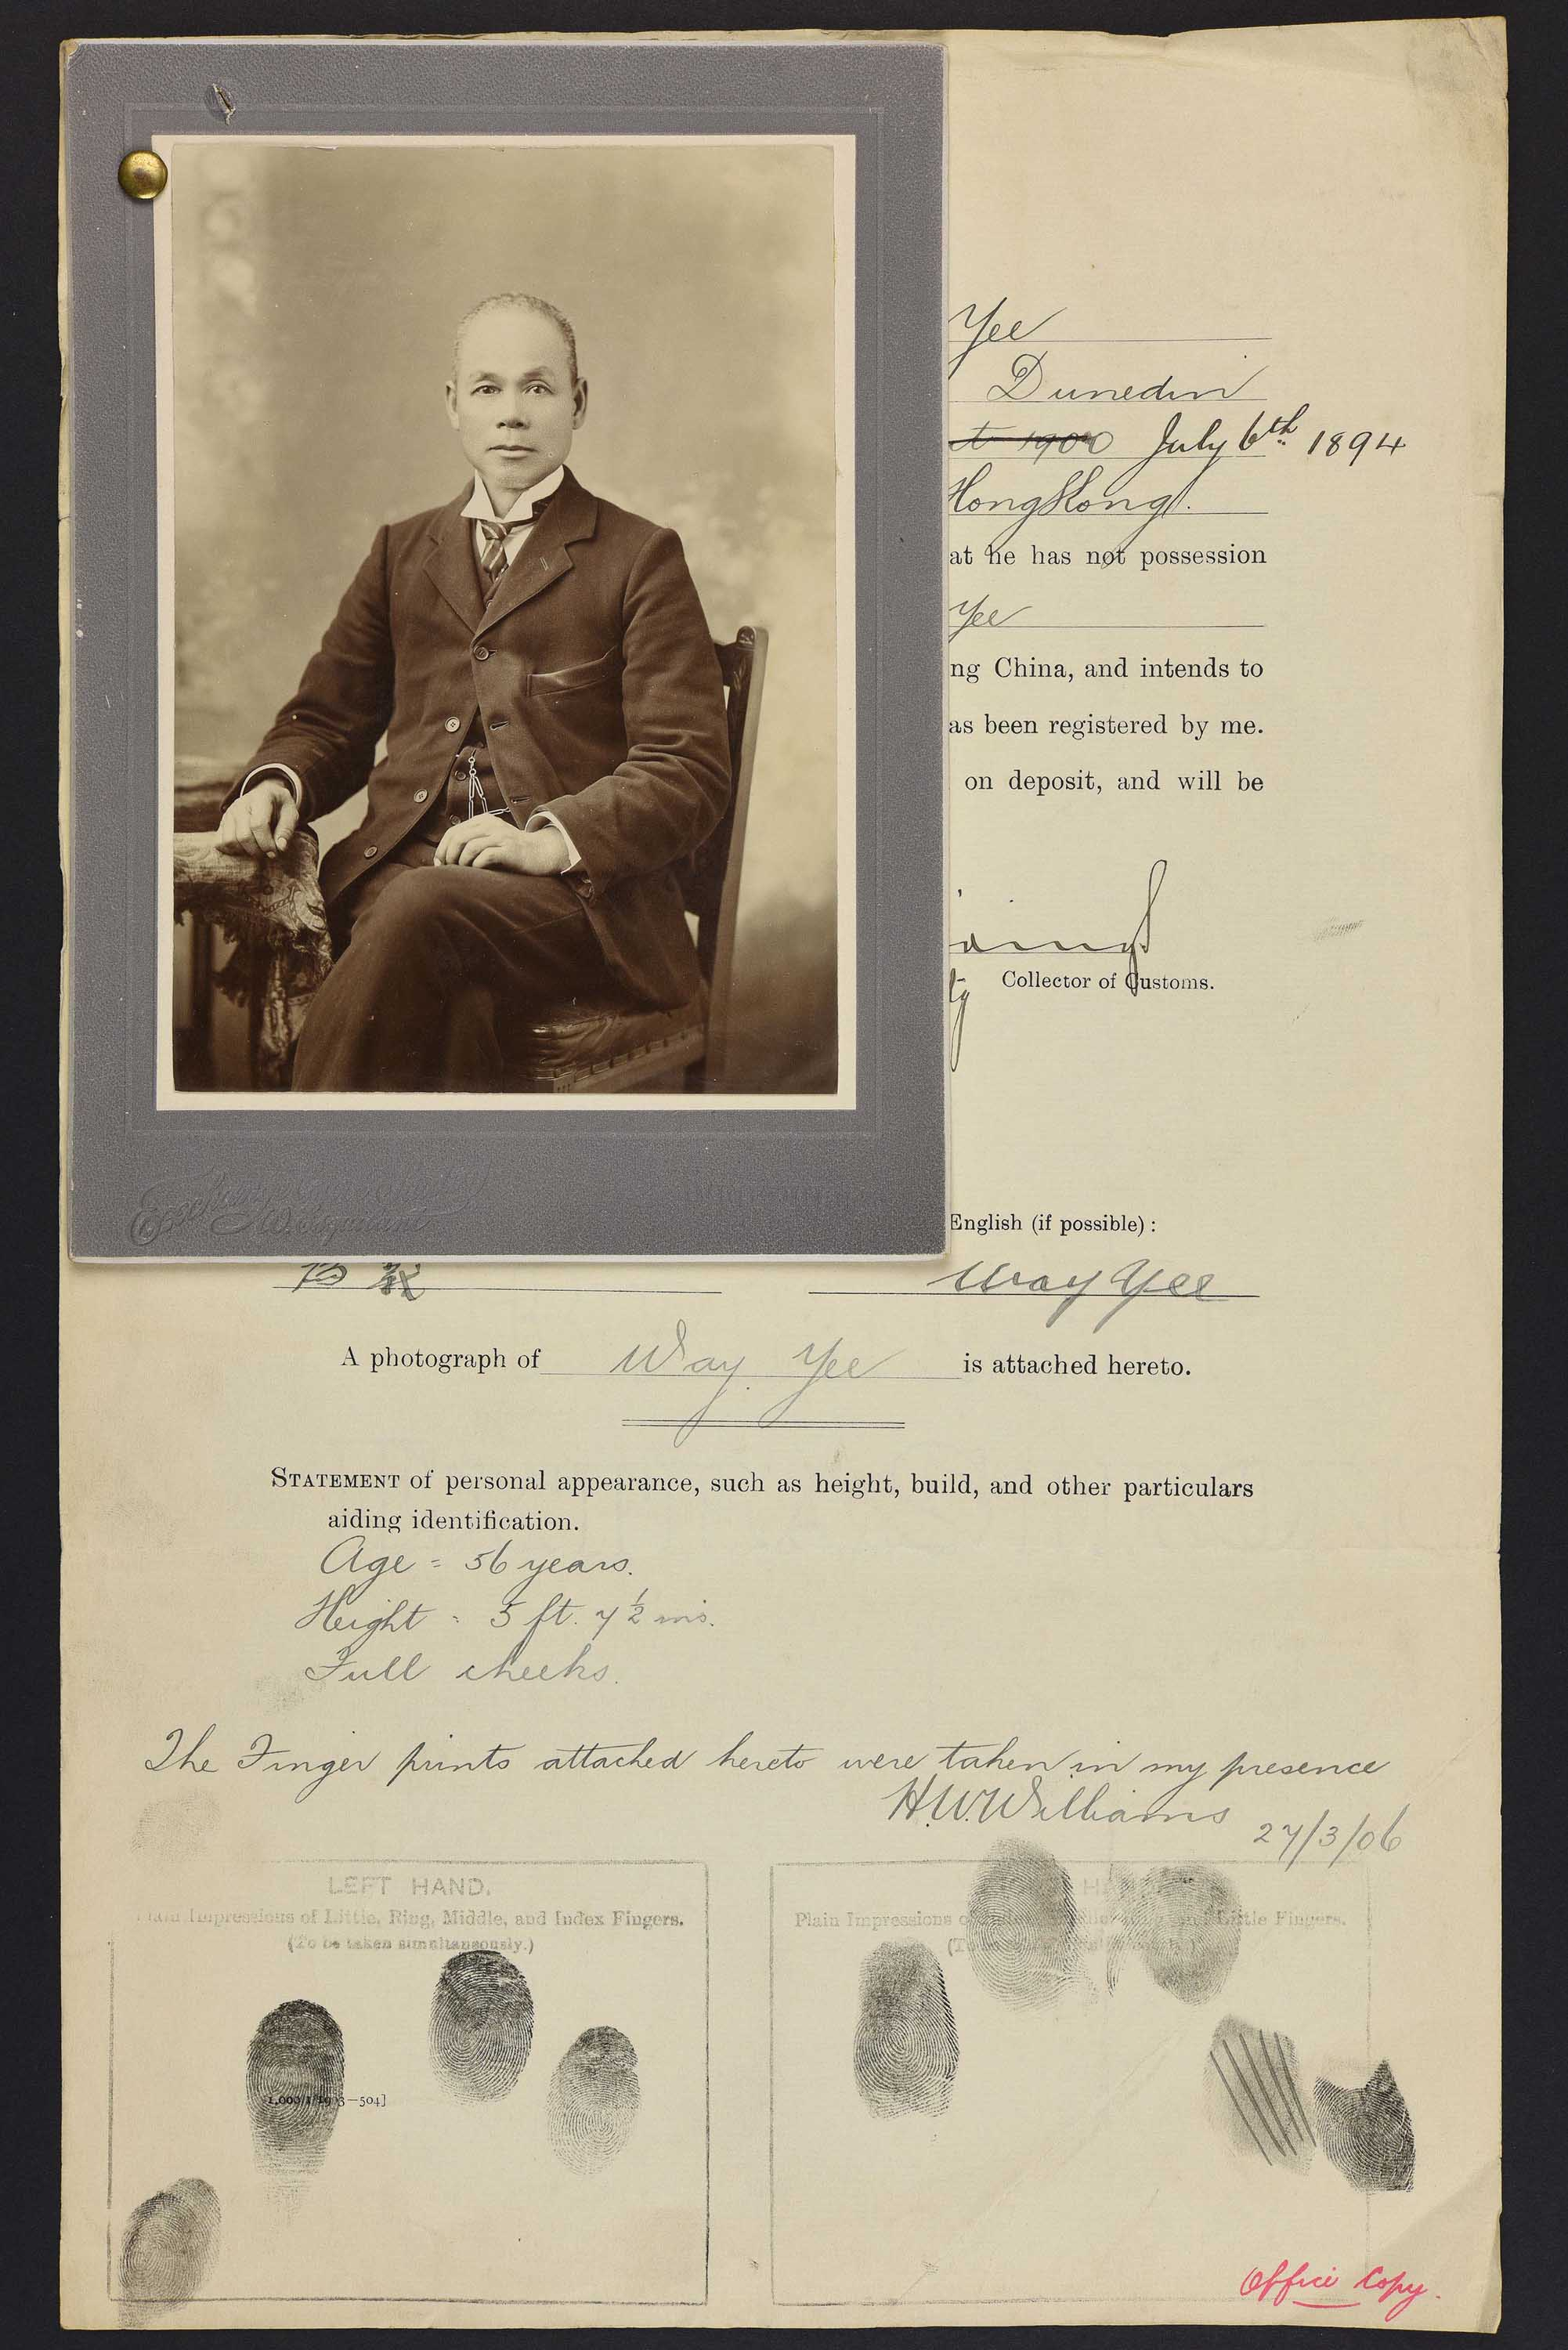 Sepia photo of a seated Chinese man attached to his immigration papers.